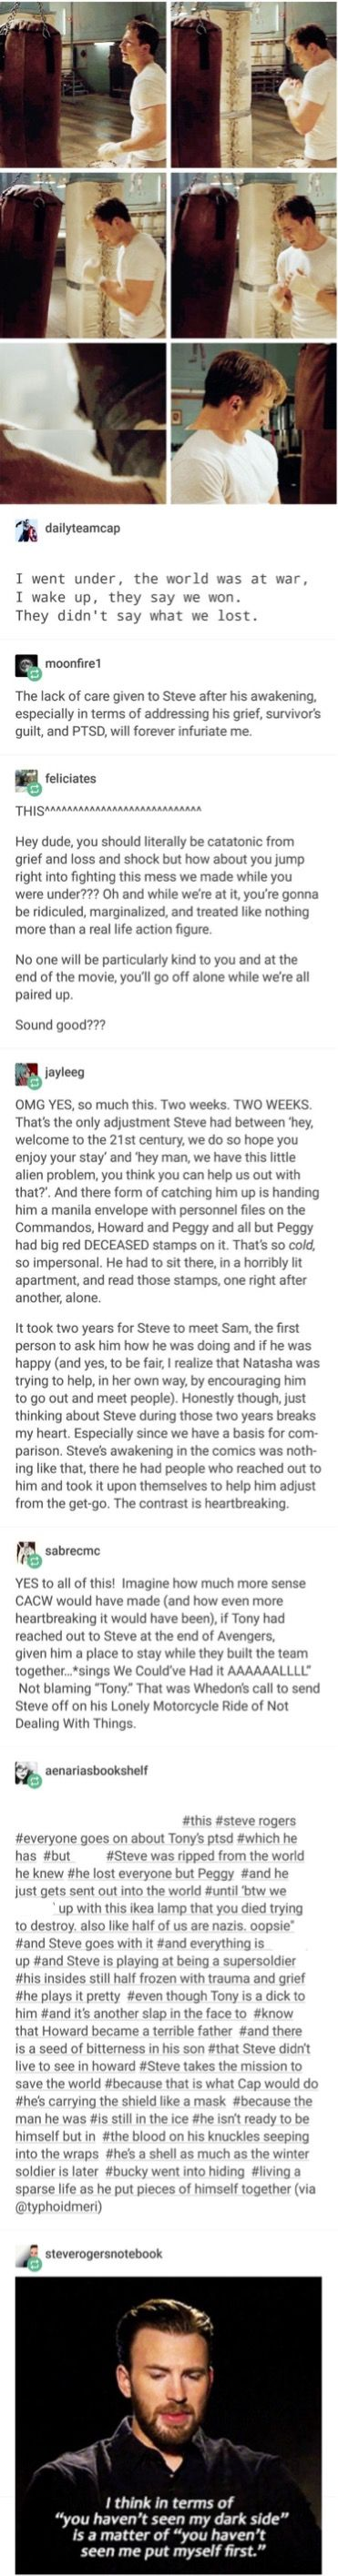 I would love to see more of Steve dealing with his life now. It would make the movies so much more than action and battling!